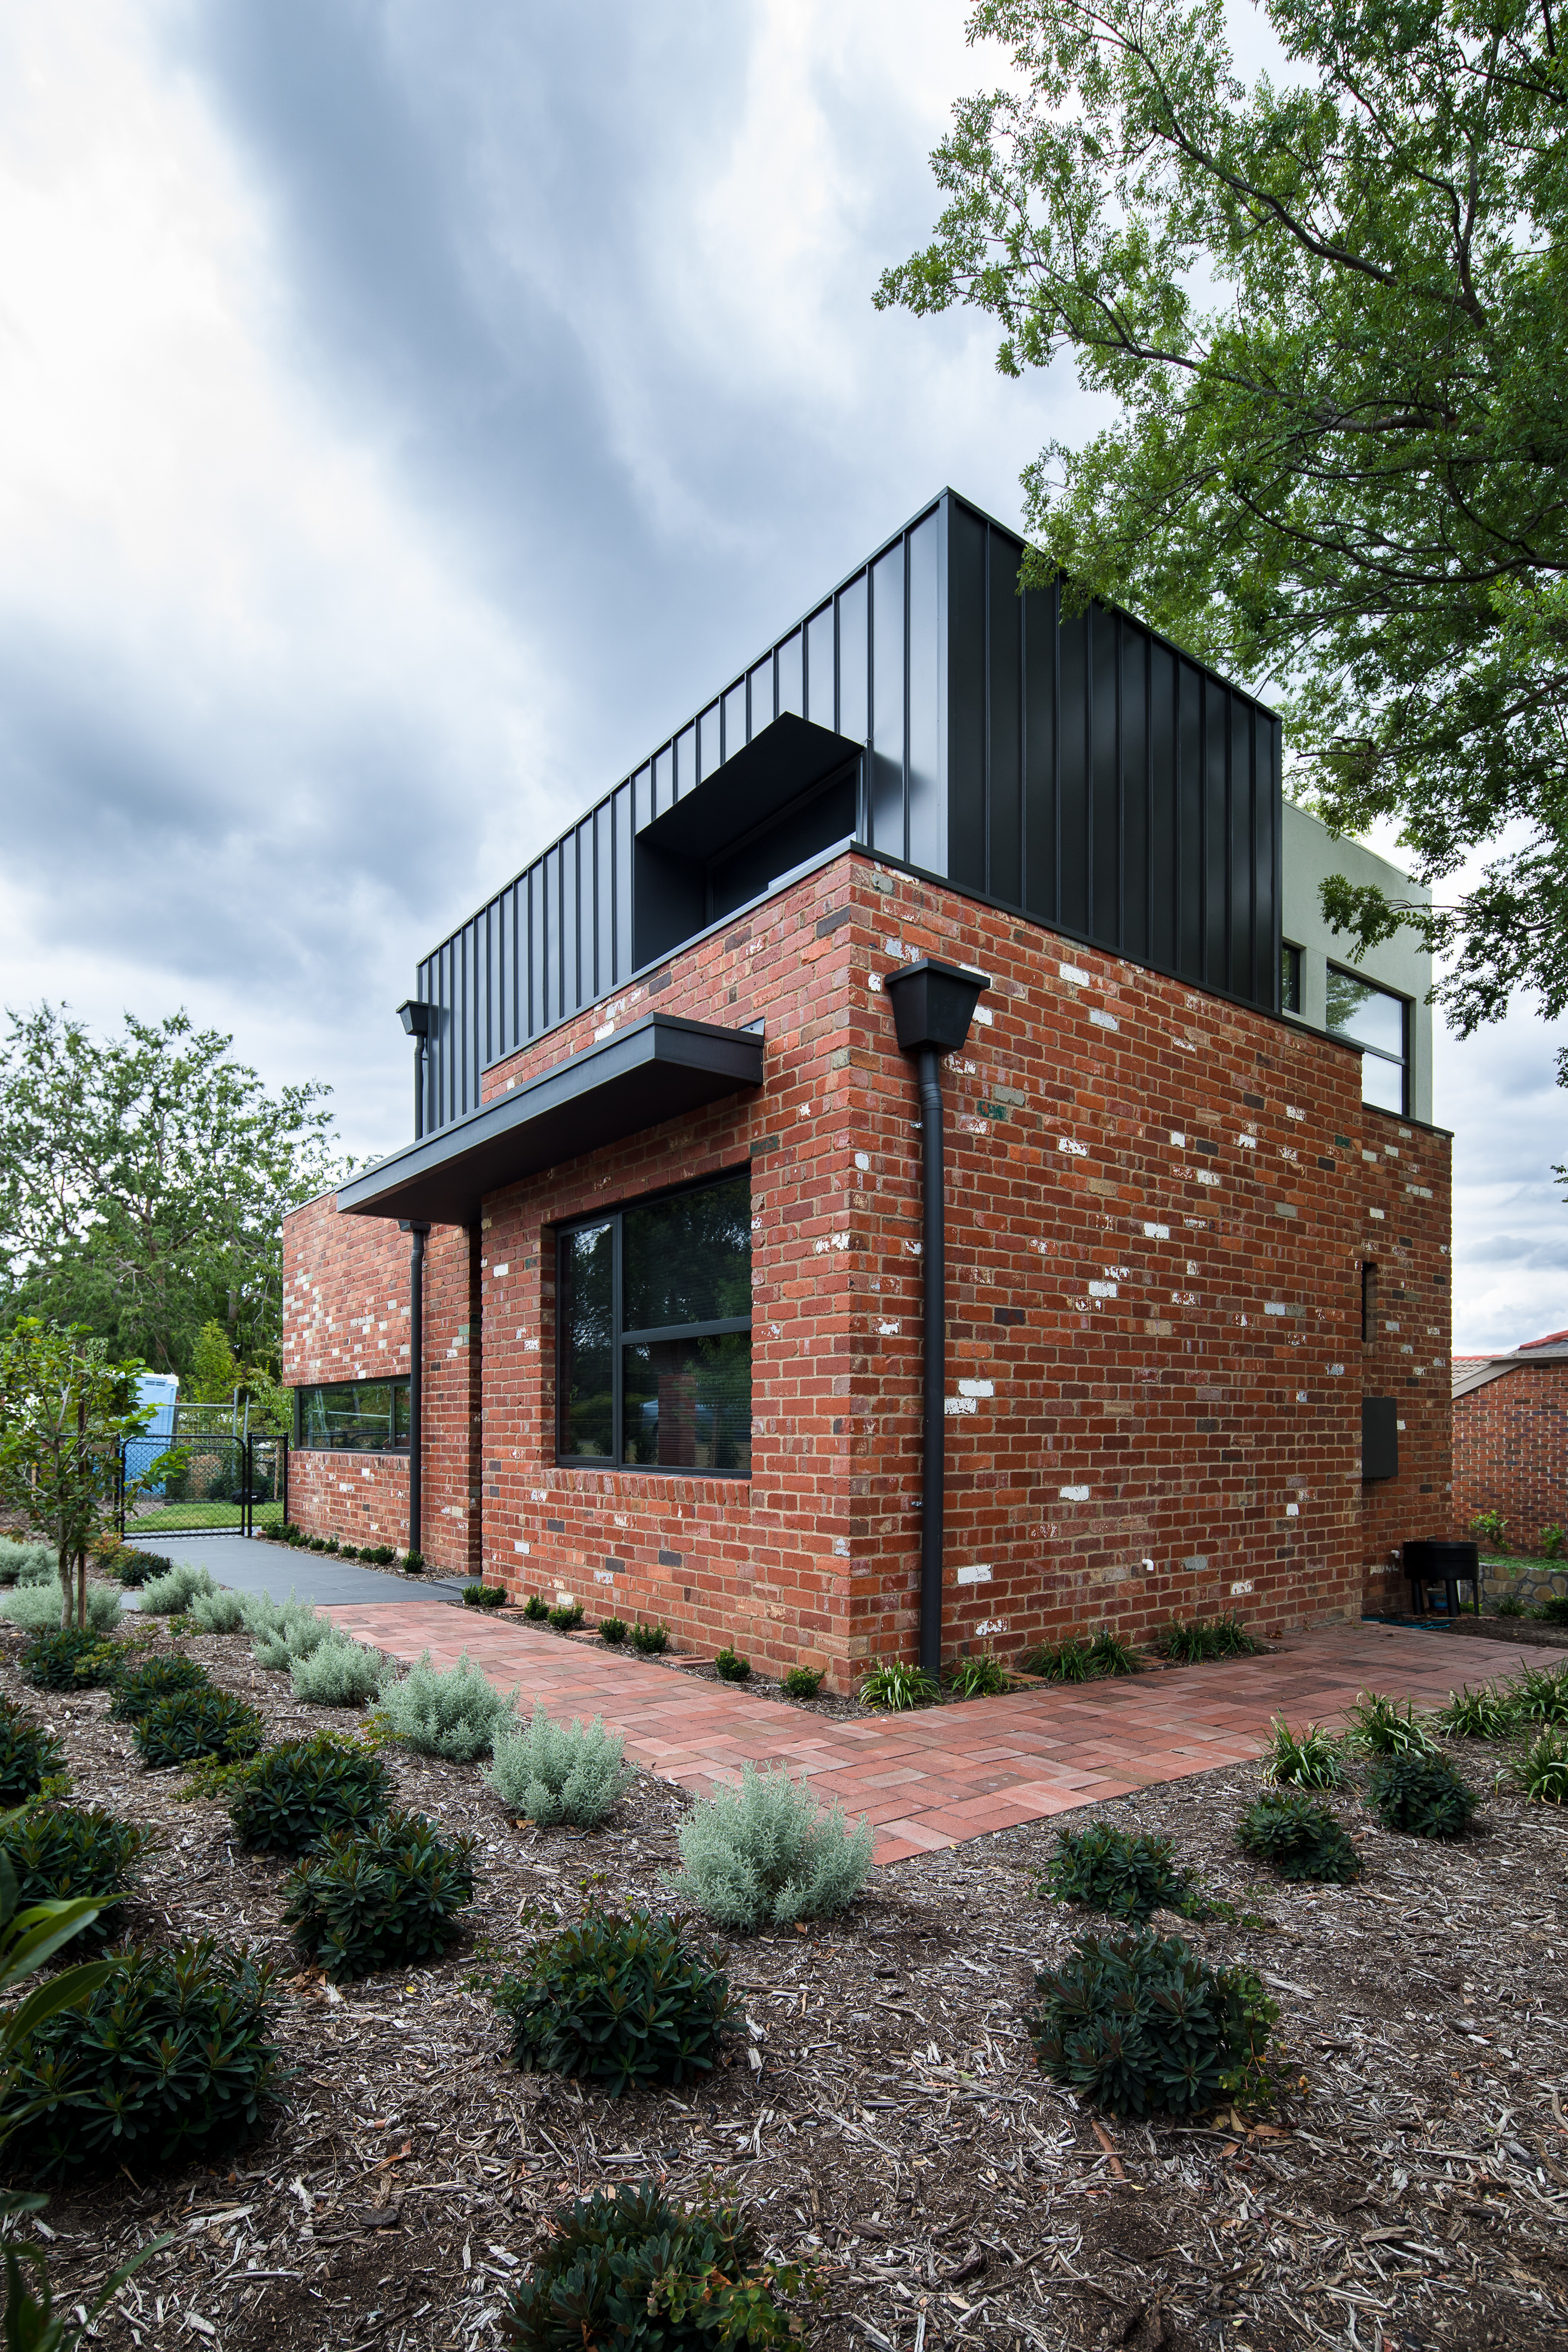 Box house design using recycled bricks in Australia